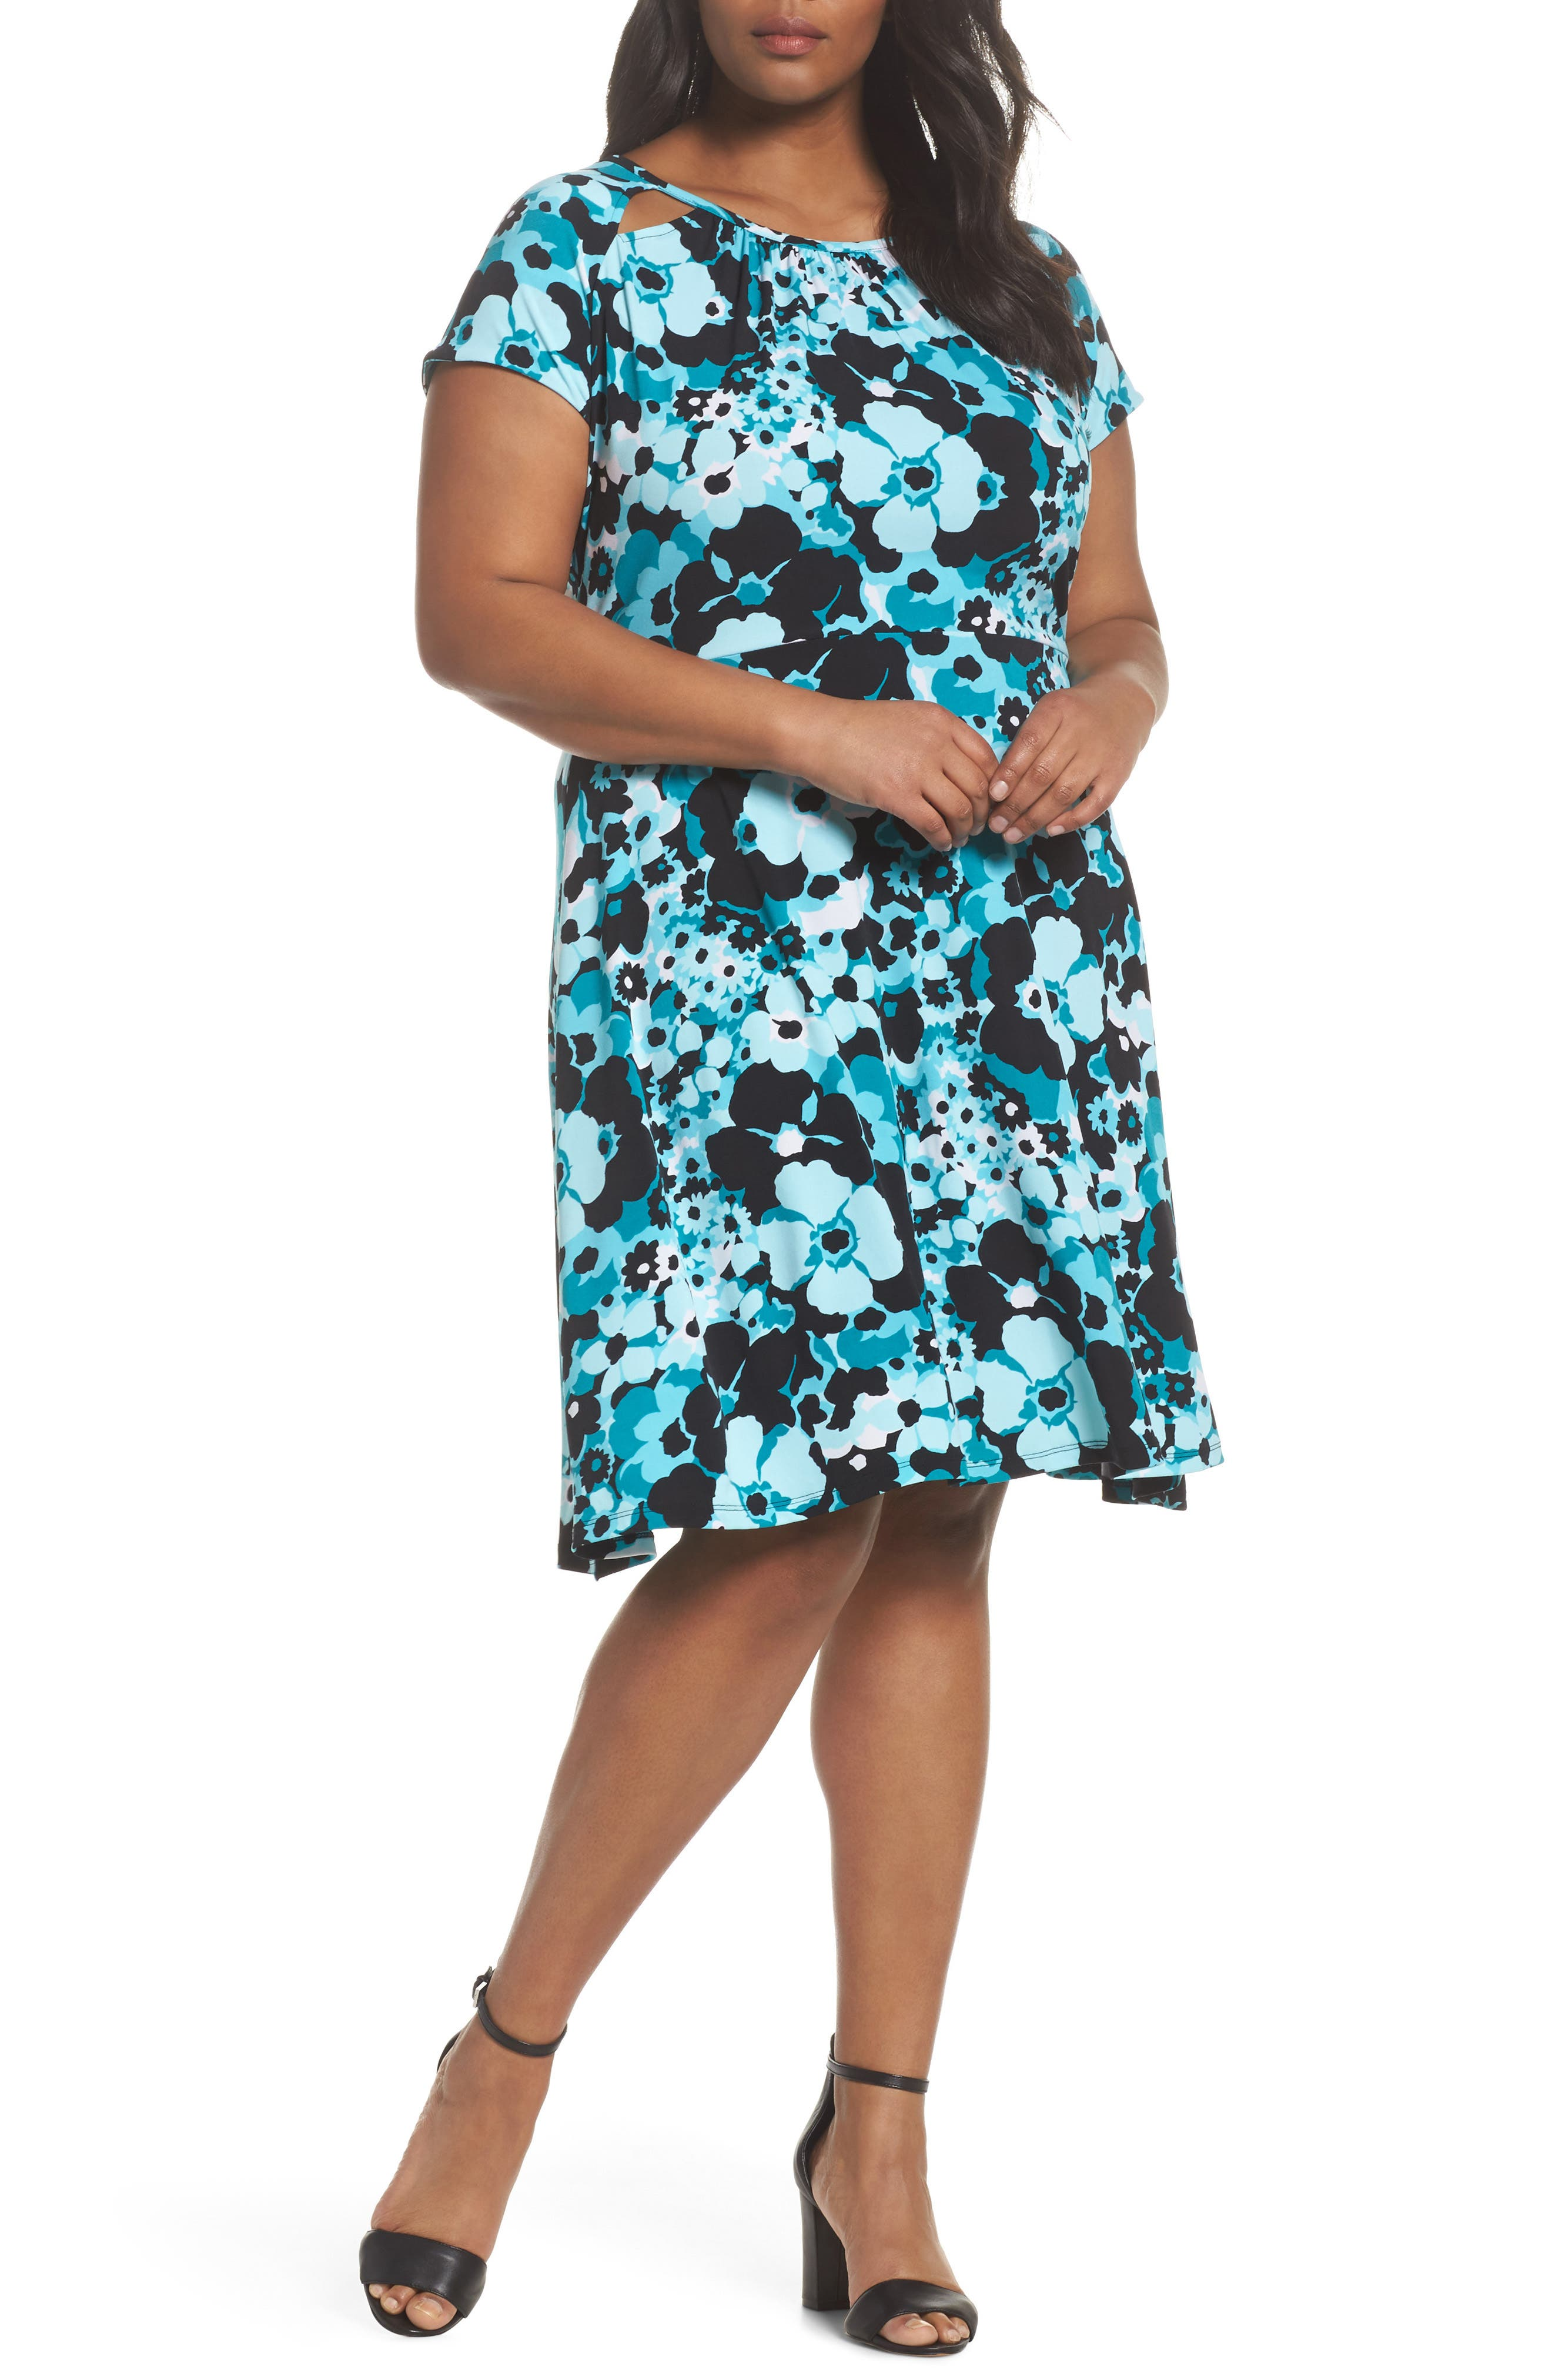 Springtime Floral Cutout Dress,                             Main thumbnail 1, color,                             494